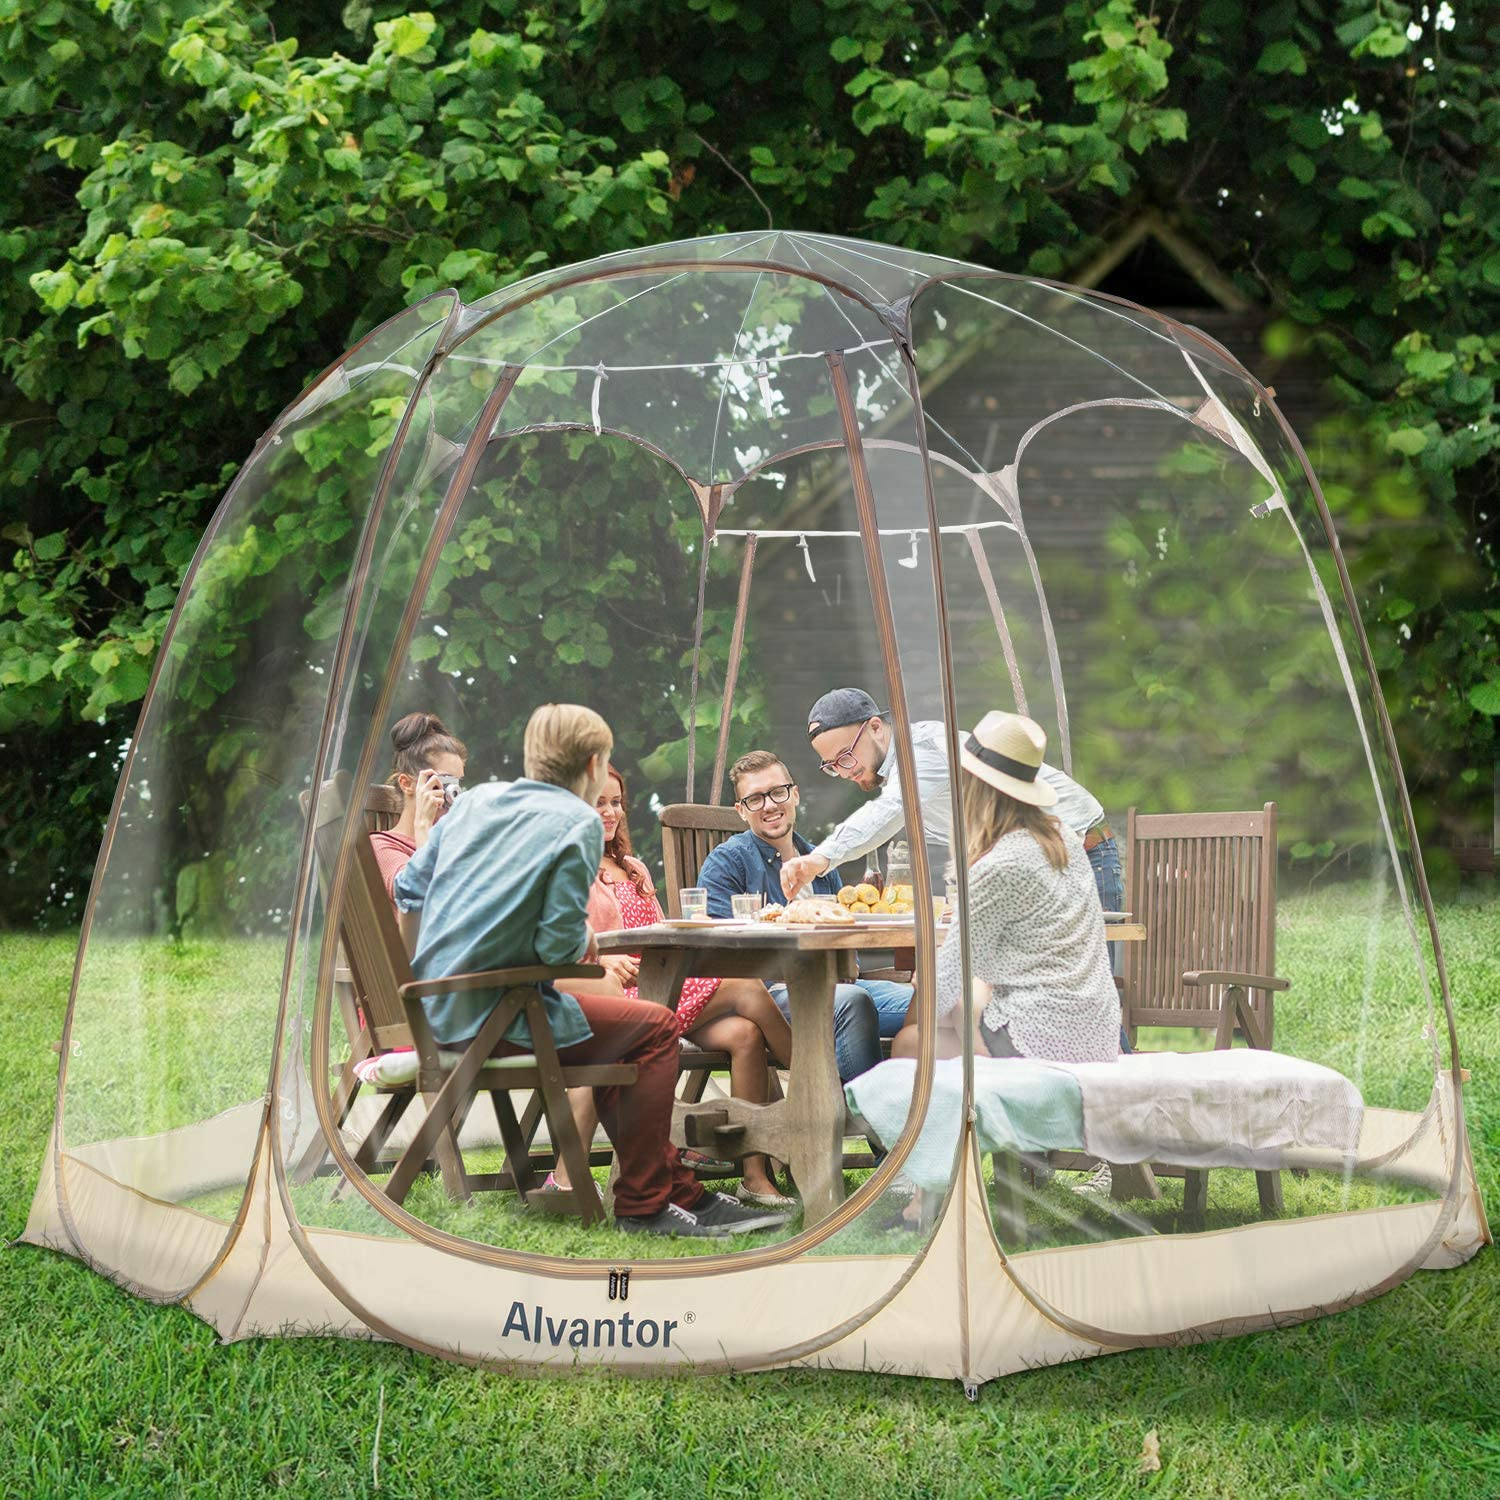 Alvantor® Pop Up Bubble Tent